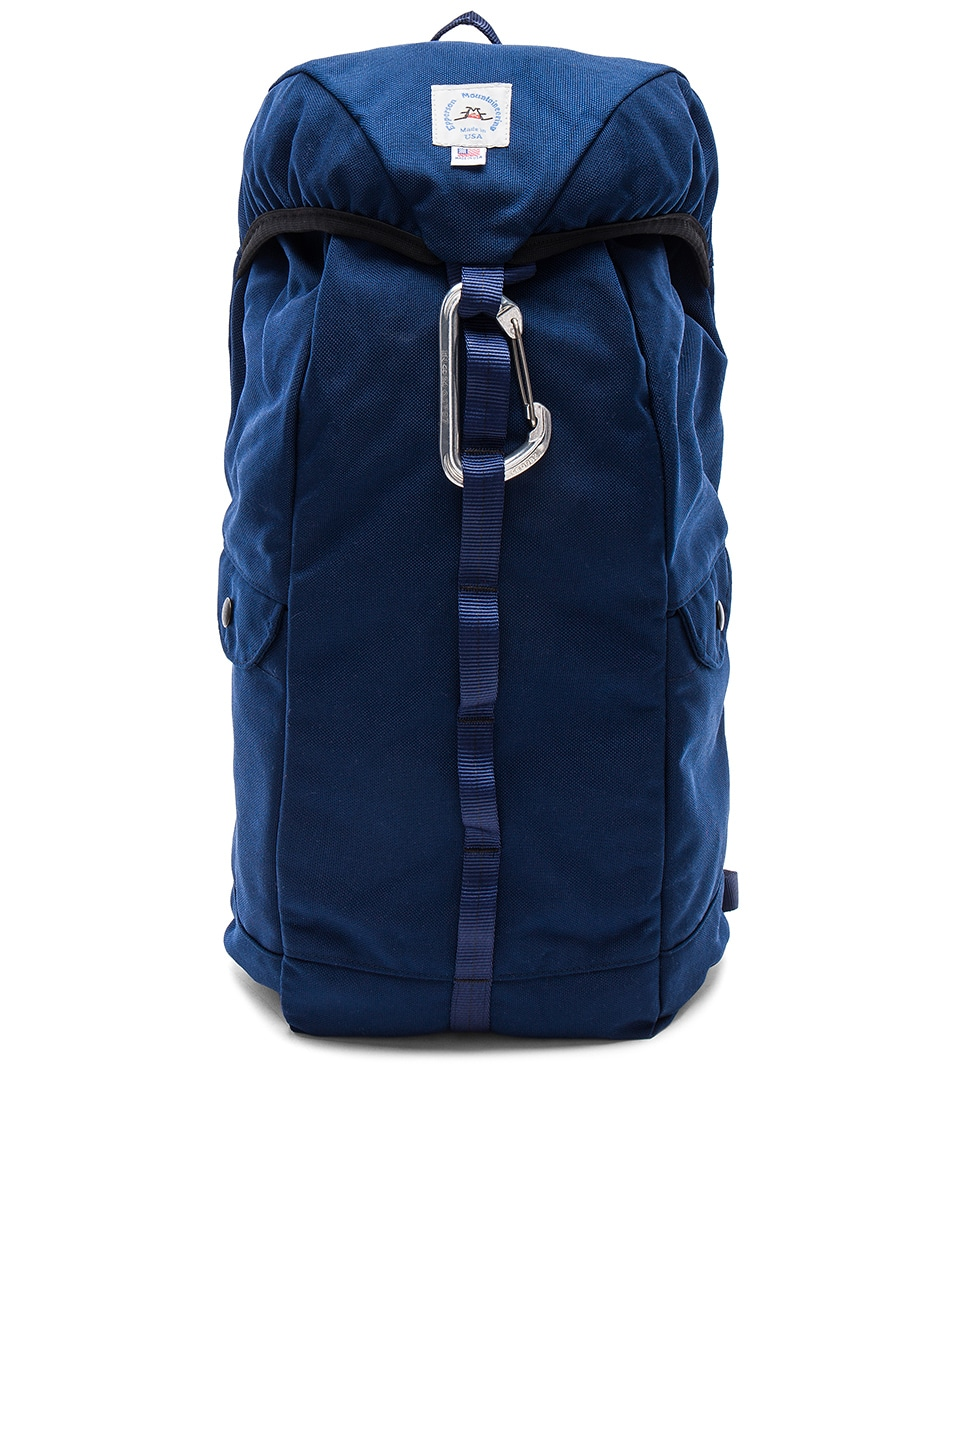 Climb Pack by Epperson Mountaineering